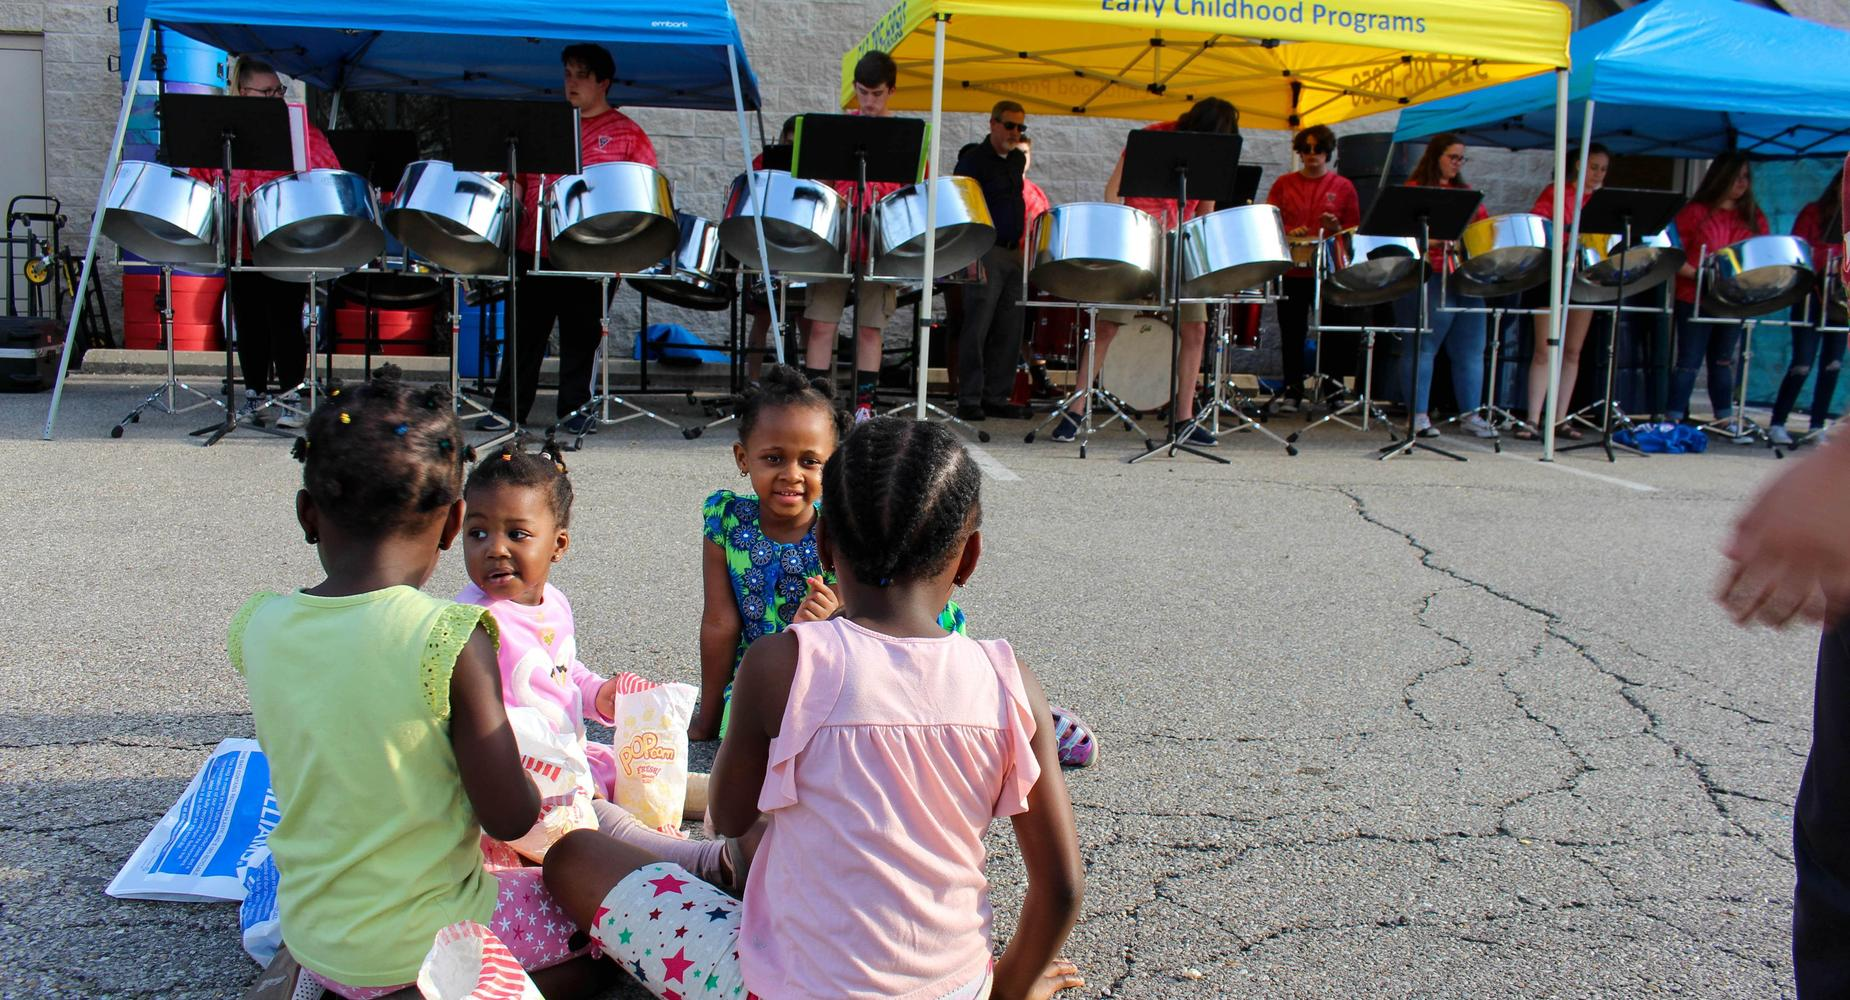 Four Black female children ages 3-5 snack on popcorn in front of a steel drum band at the Friends Around the World cultural celebration